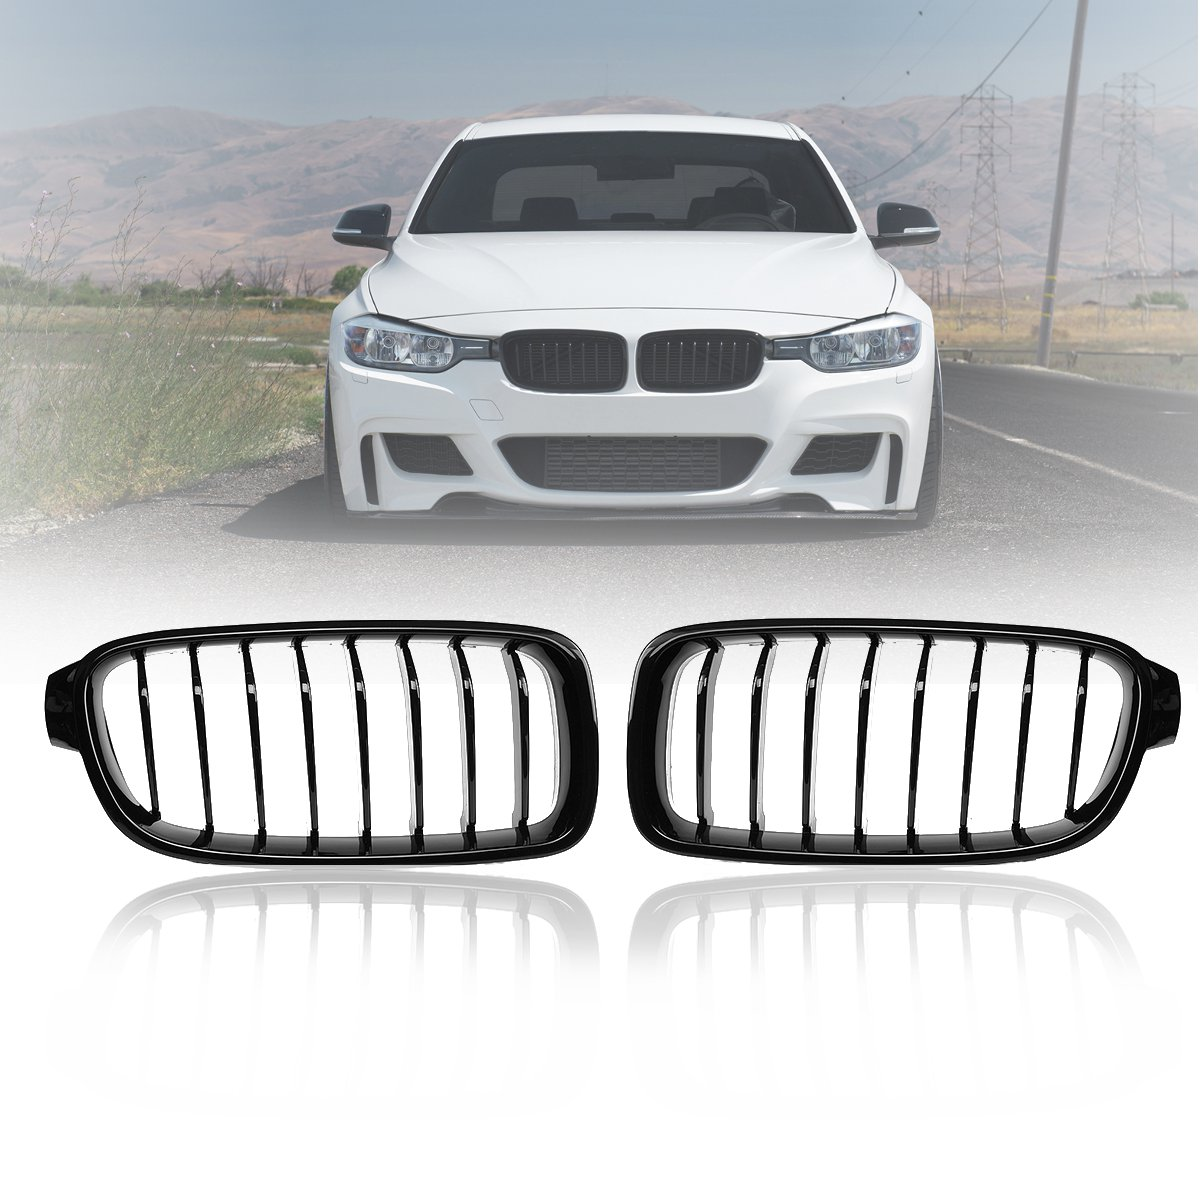 Front-Kidney-Grille Gloss Carbon Matt Black F30 F31 3-Series BMW Pair for Racing Grills title=